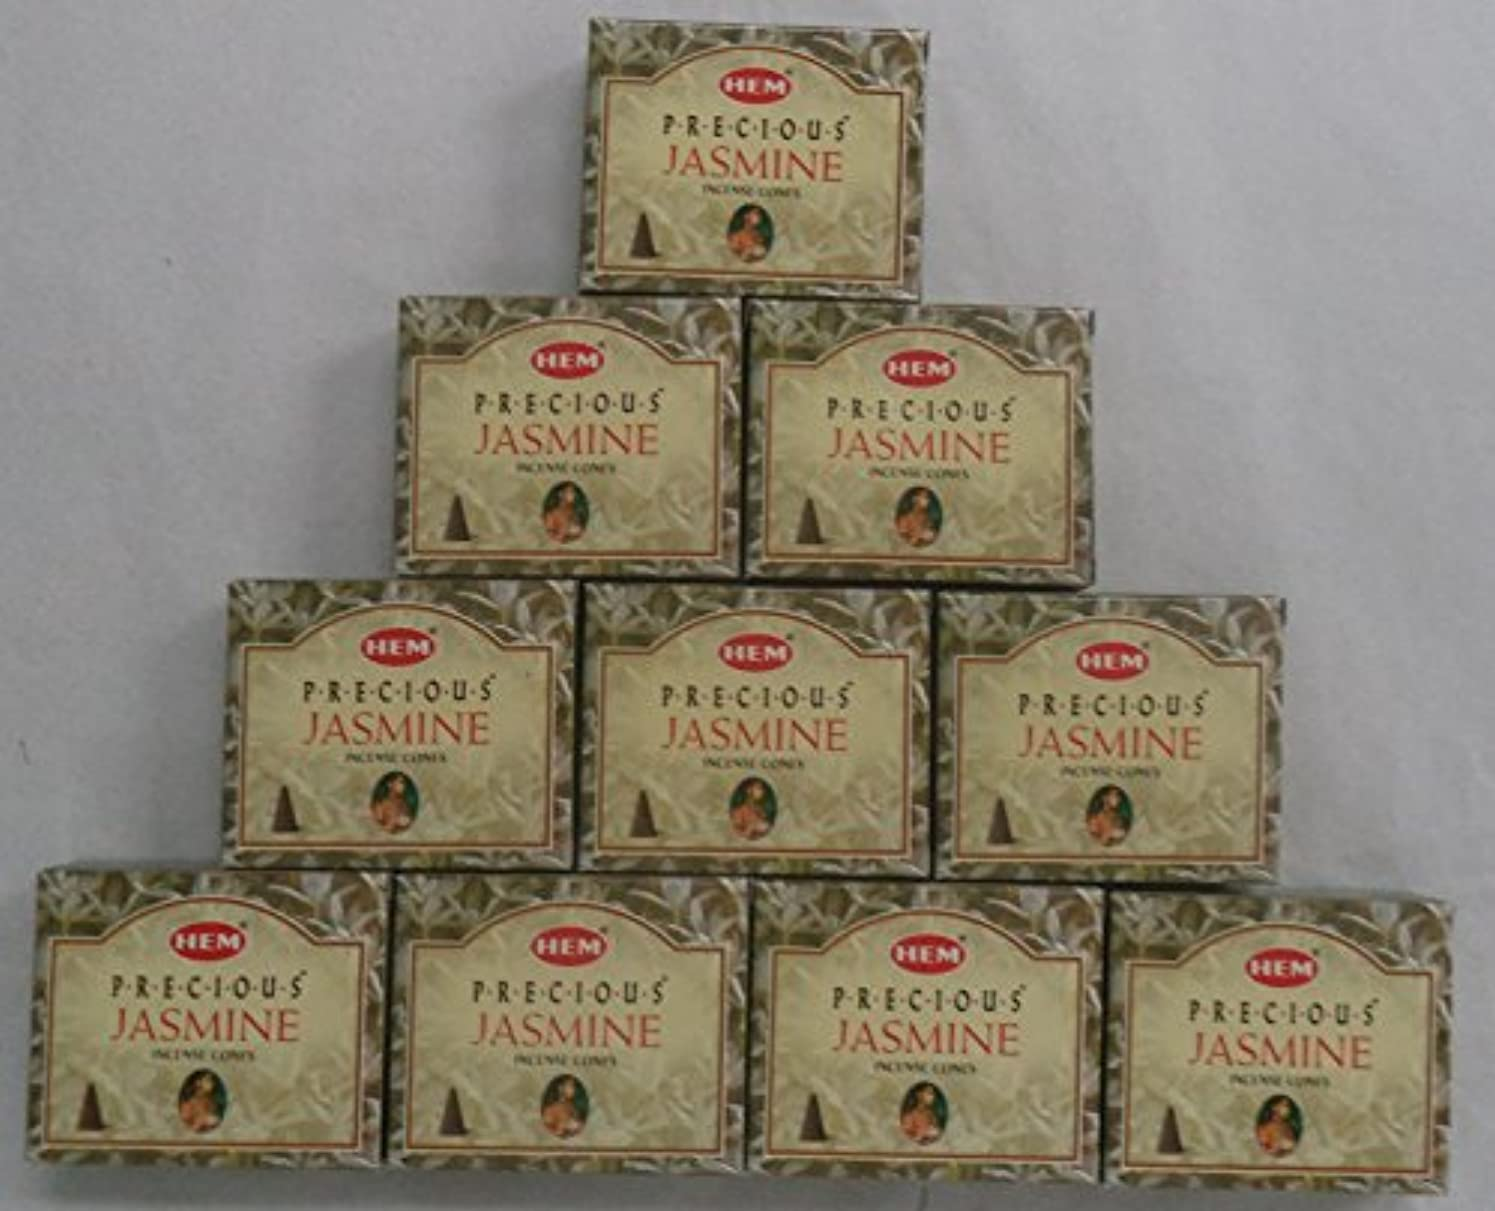 共産主義者罪悪感メルボルンHEM Incense Cones: Precious Jasmine - 10 Packs of 10 = 100 Cones by Hem